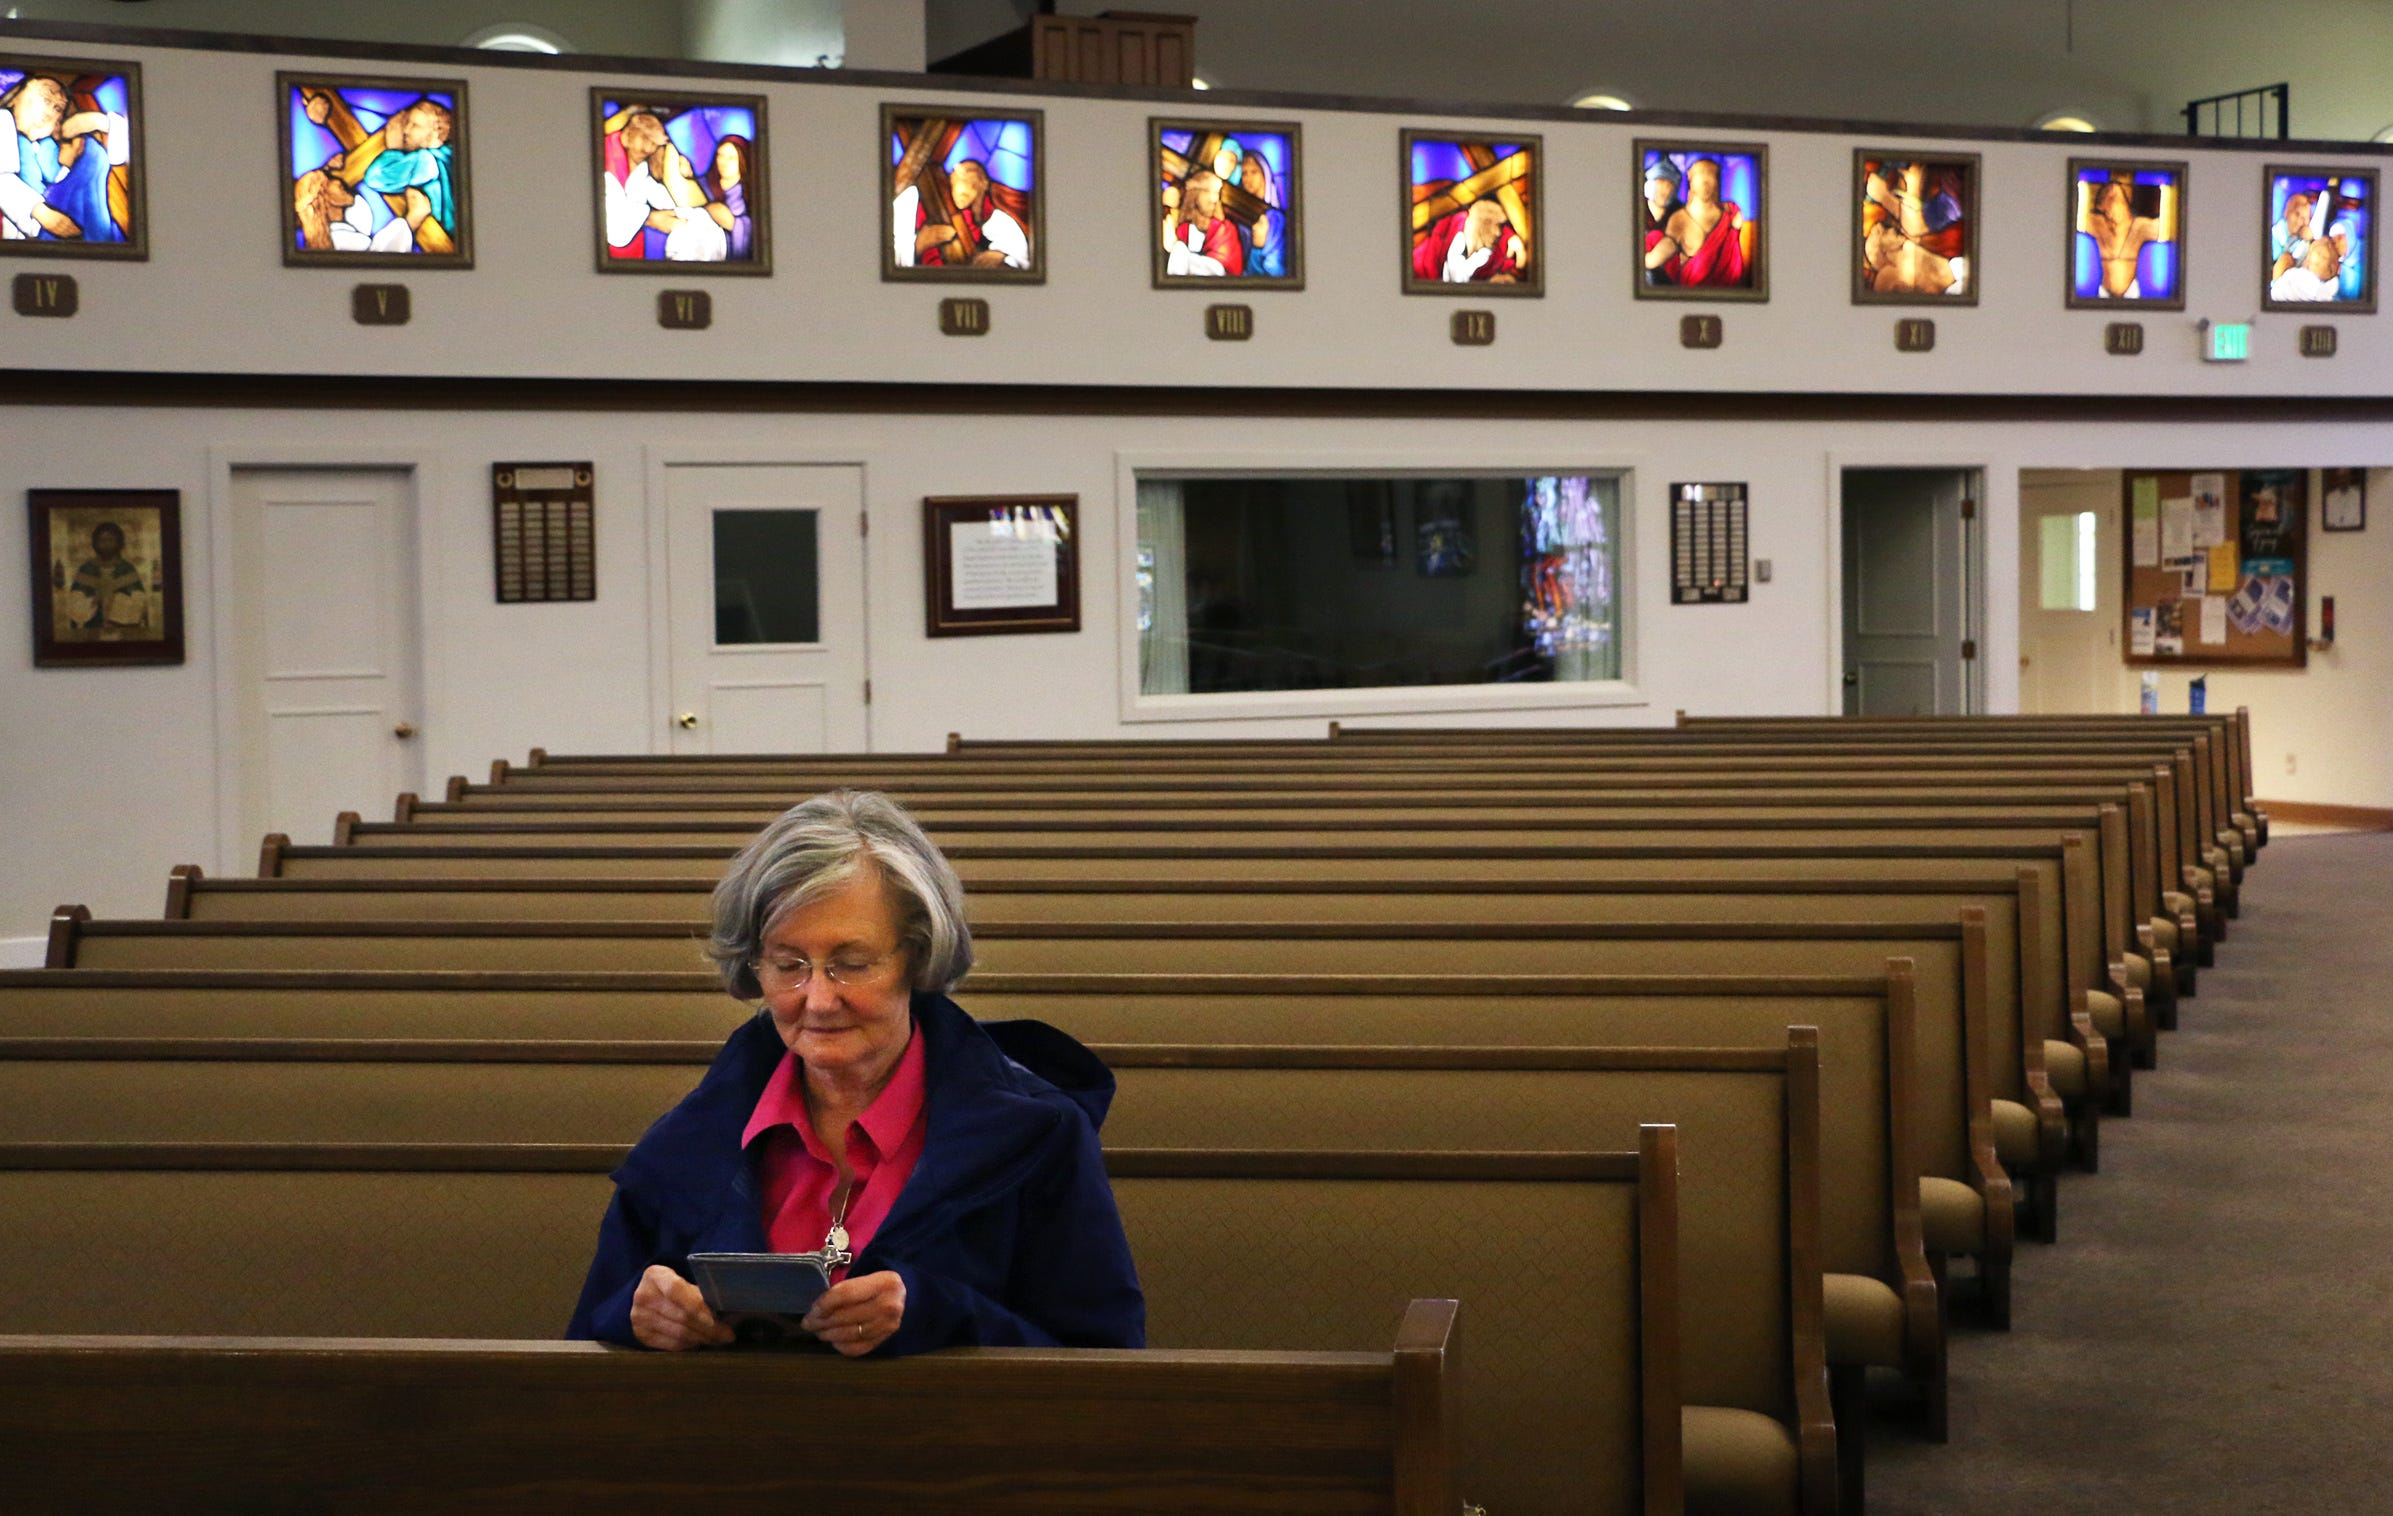 Parishioner Donna Kelly prays in solitude at Our Lady of the Snows Catholic Church in Reno on March 20, 2020.